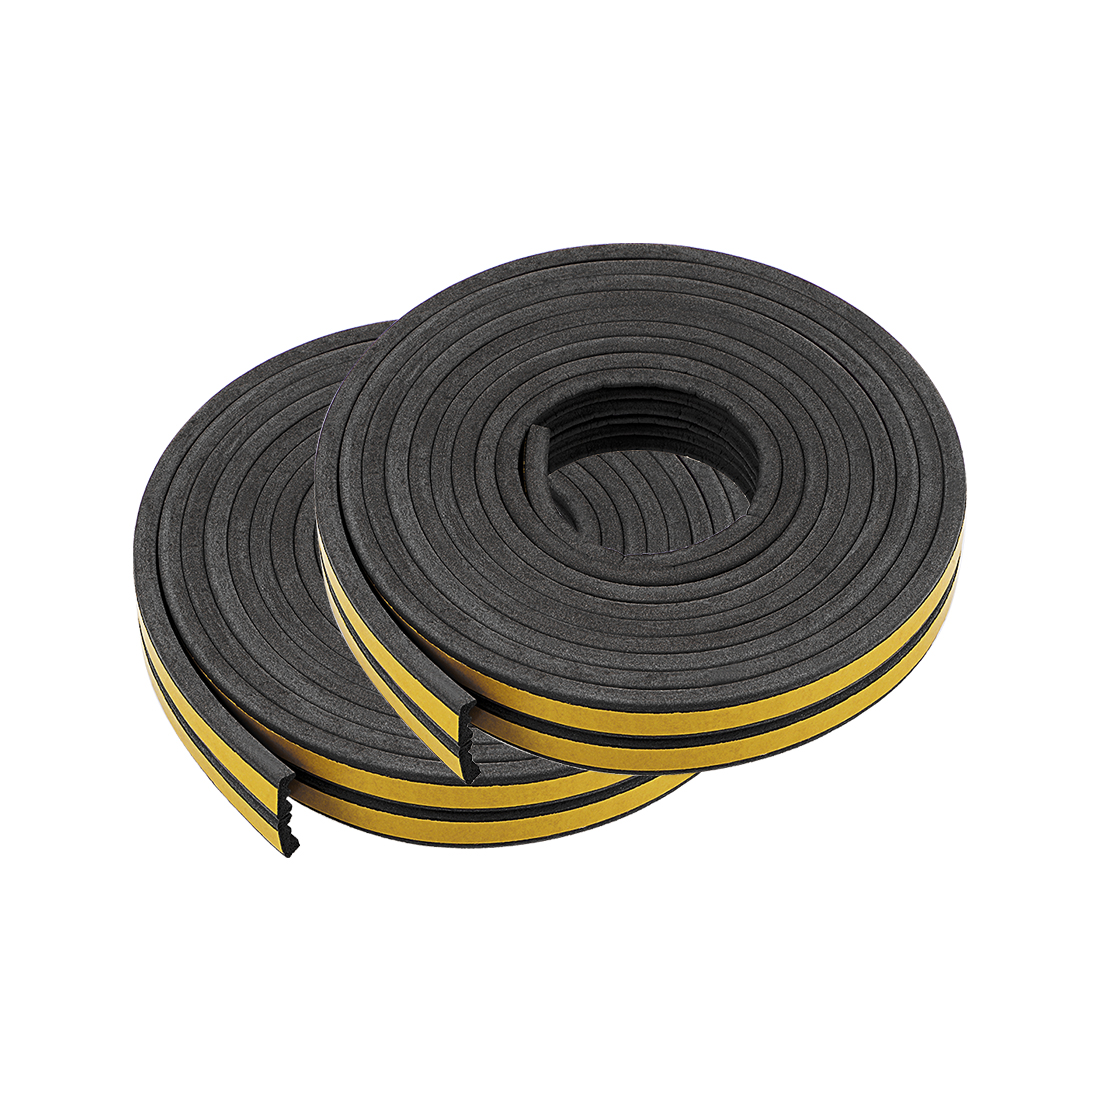 Foam Tape Adhesive 9mm Width 4mm Thick, Total 32.8 Feet Long Black 4Pcs